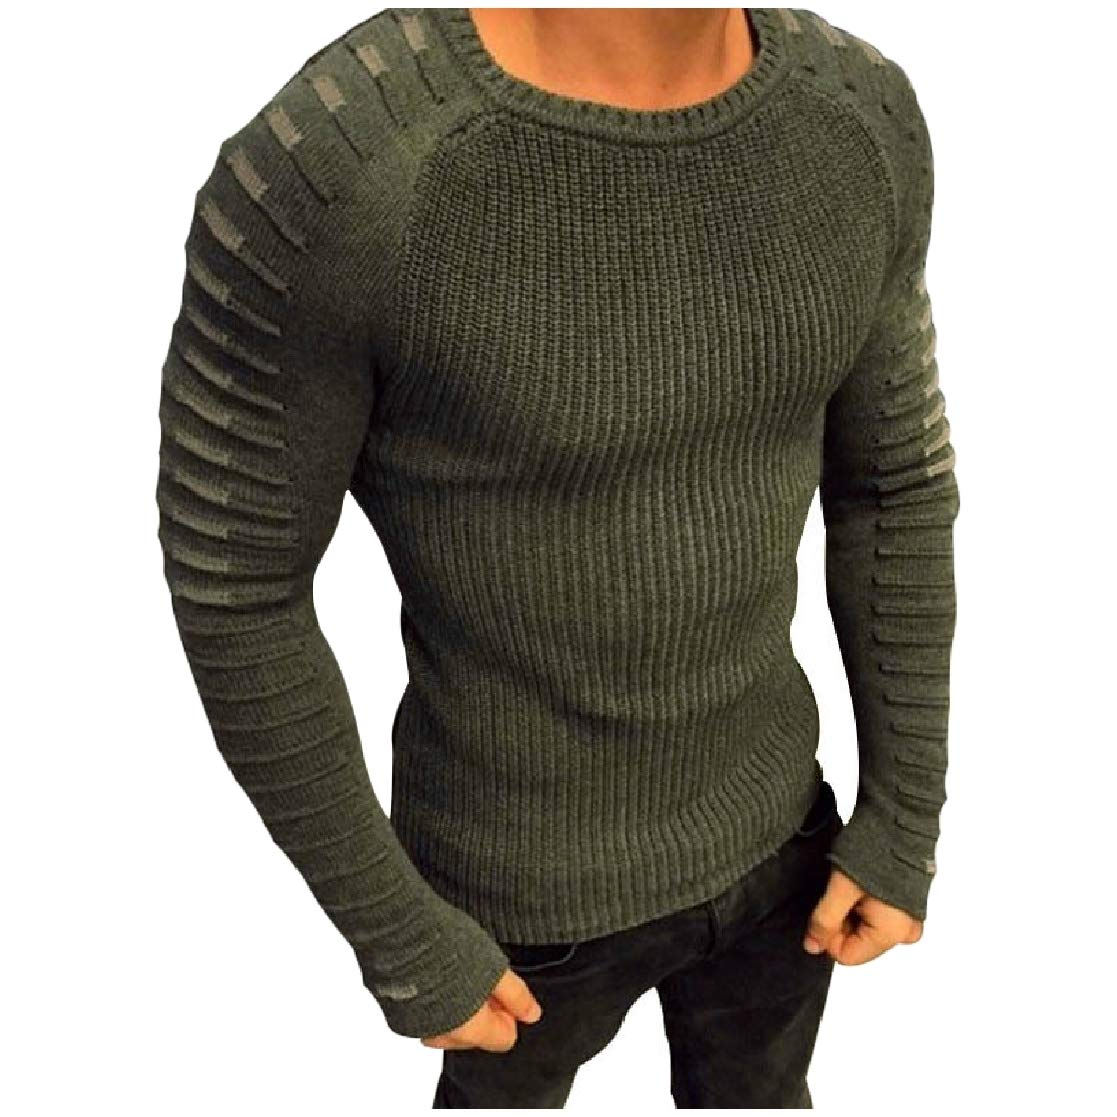 YUNY Mens Long Sleeve Tops Round Collar Classic Fall /& Winter Pullover Sweaters Army Green M